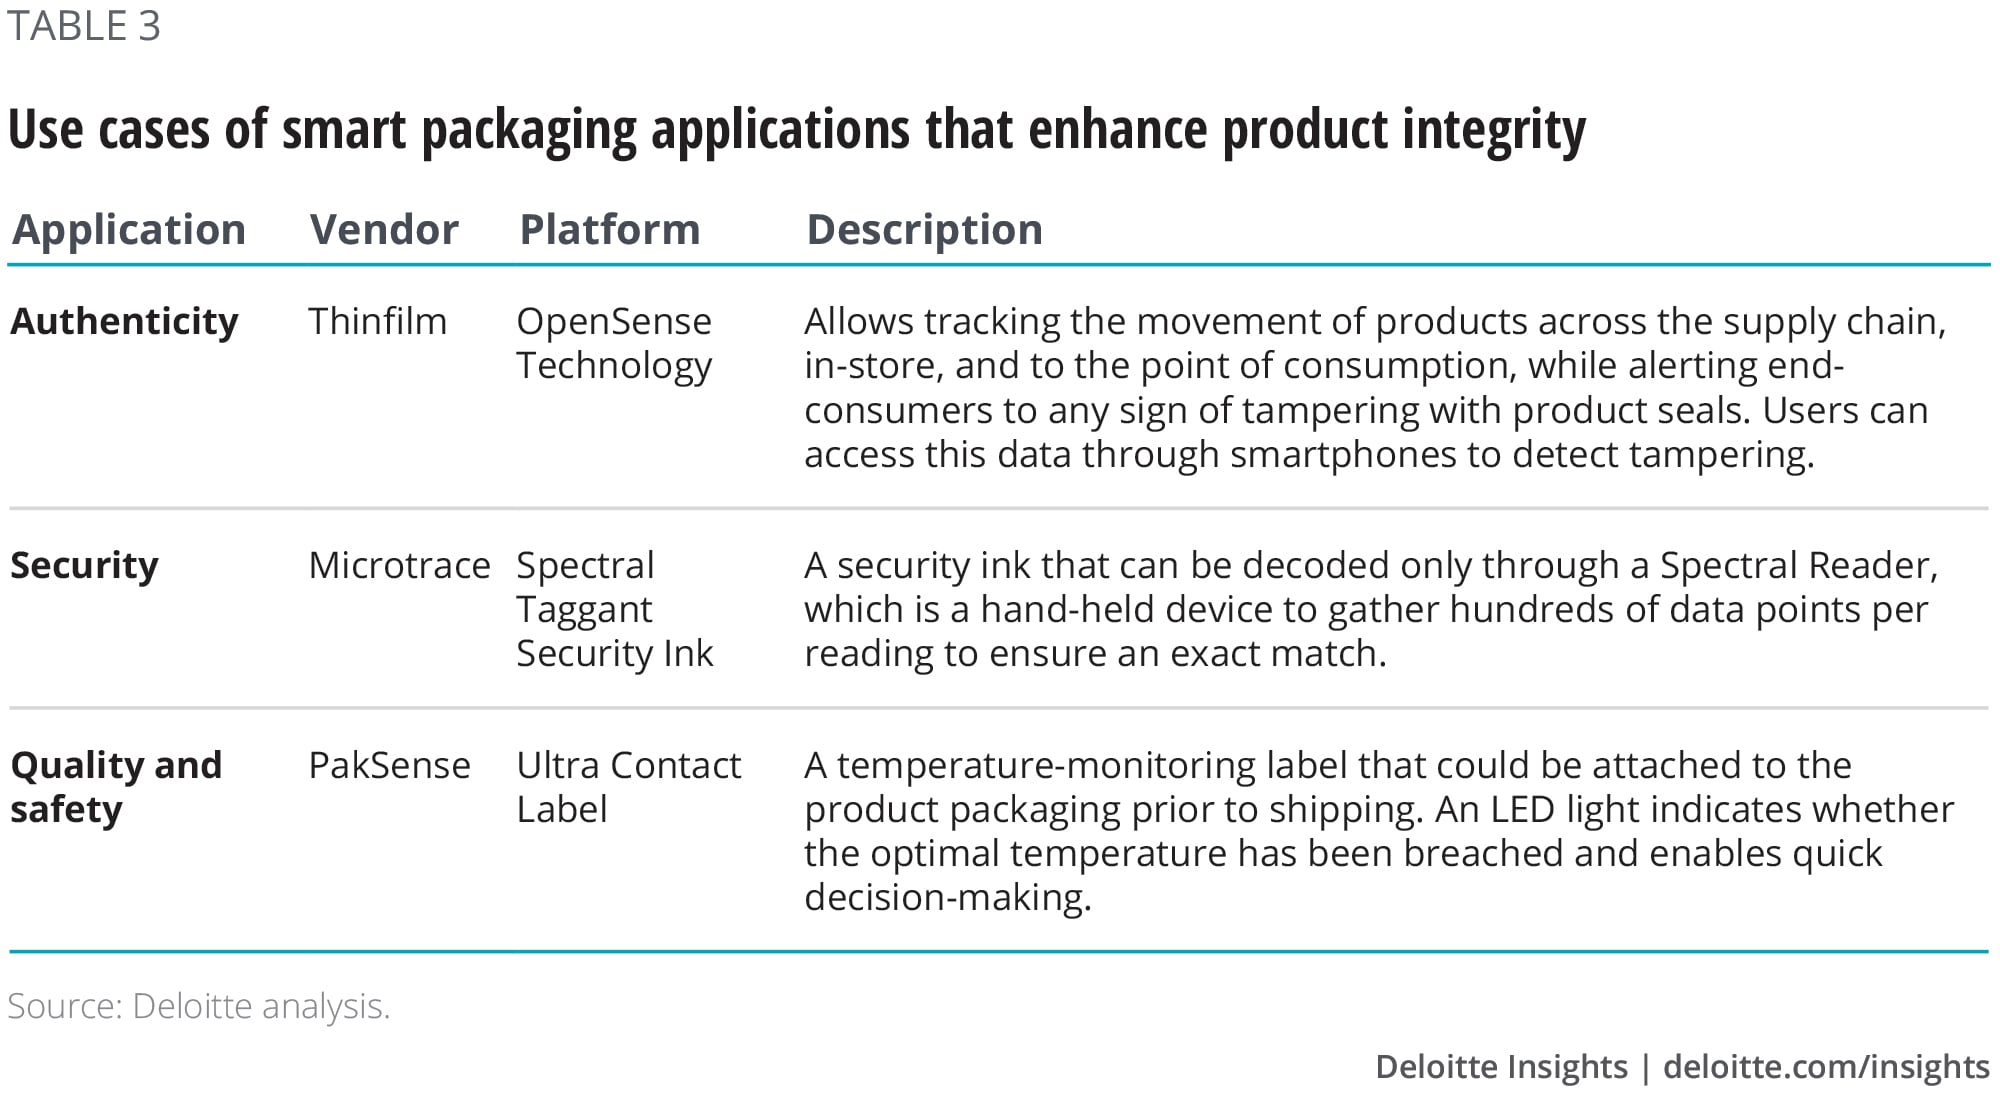 Smart packaging: How to create and capture value | Deloitte